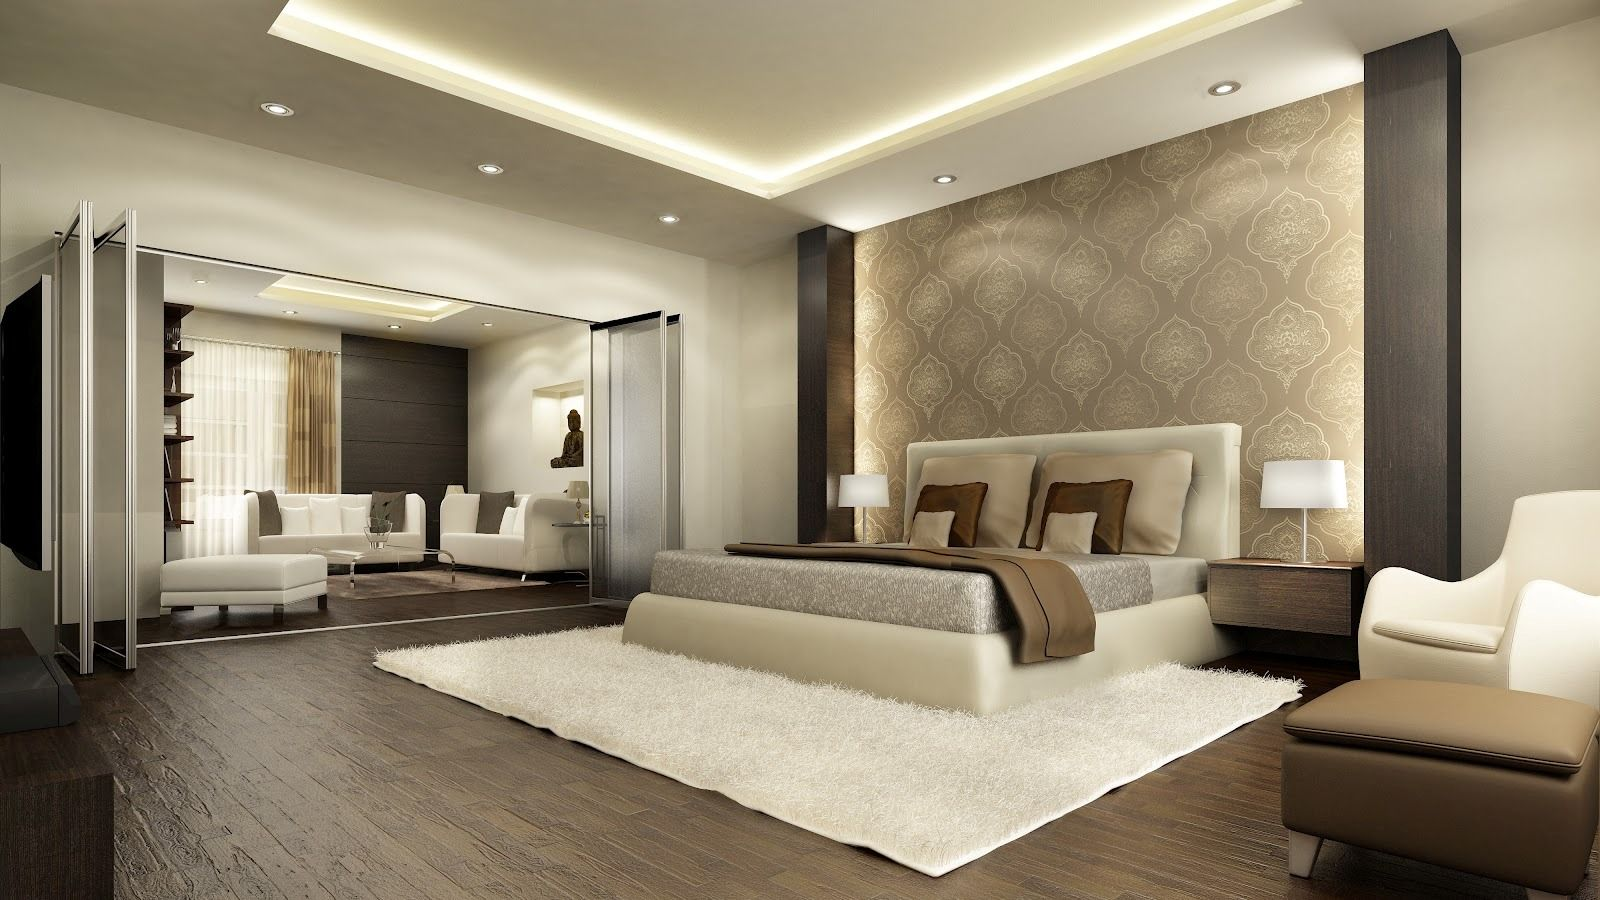 Fascinating Luxury Strangely Bedroom Interior Design Fur Rug Wooden ...